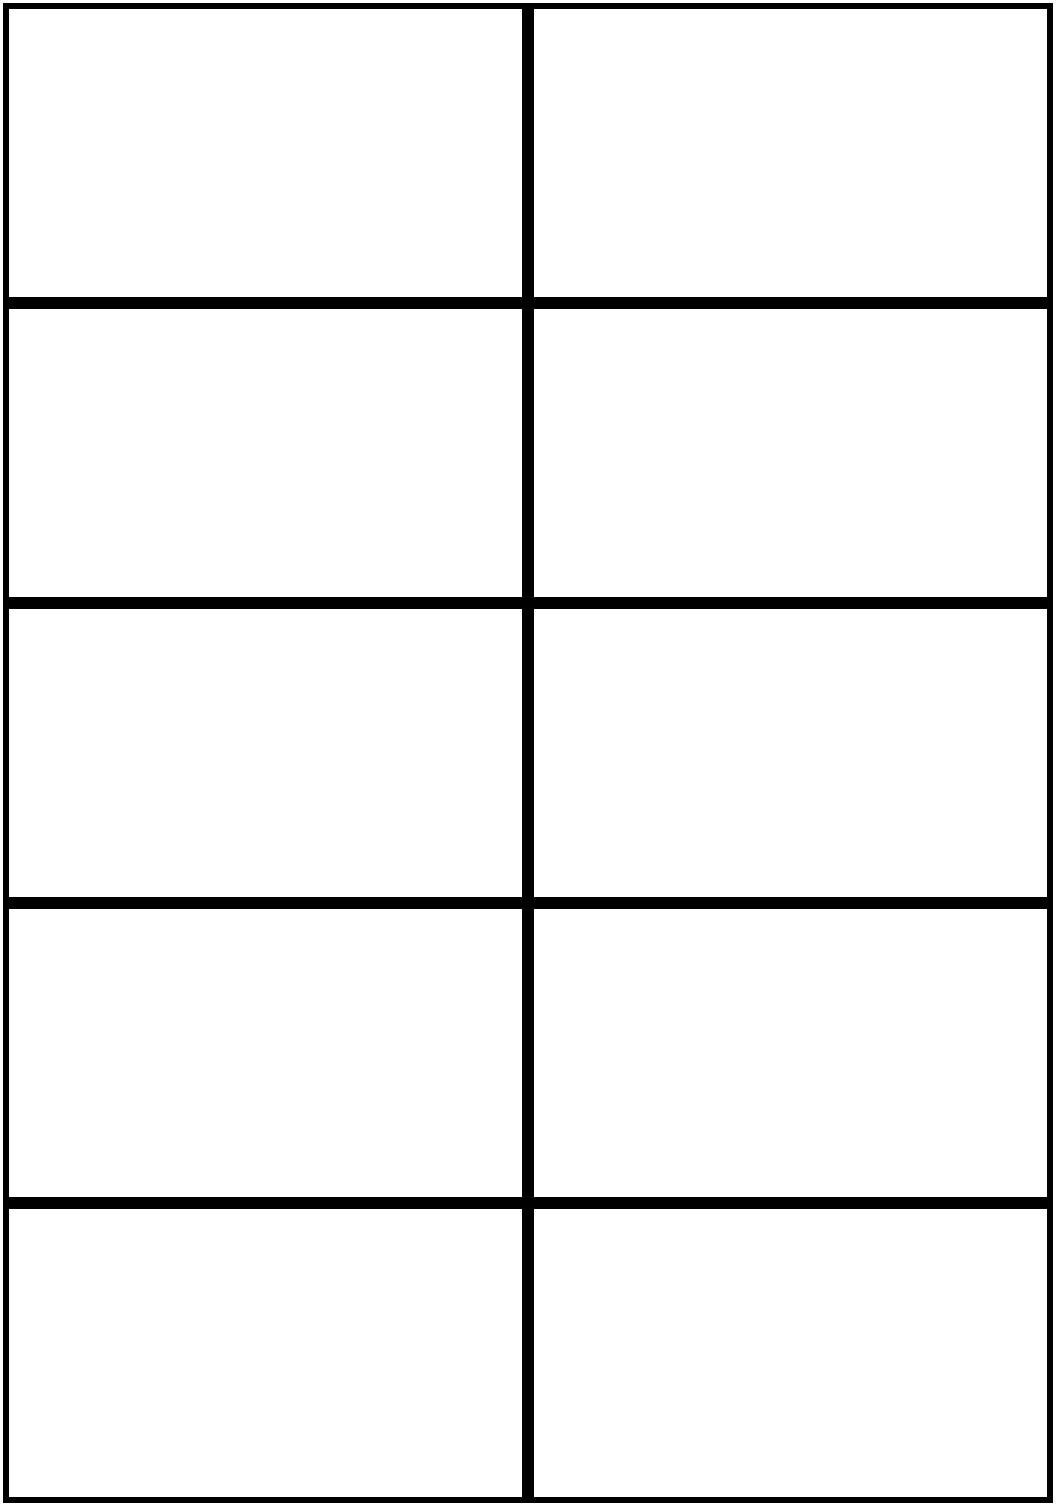 Image Result For Flashcards Template Word   Worksheets   Free - Free Printable Business Card Templates For Word